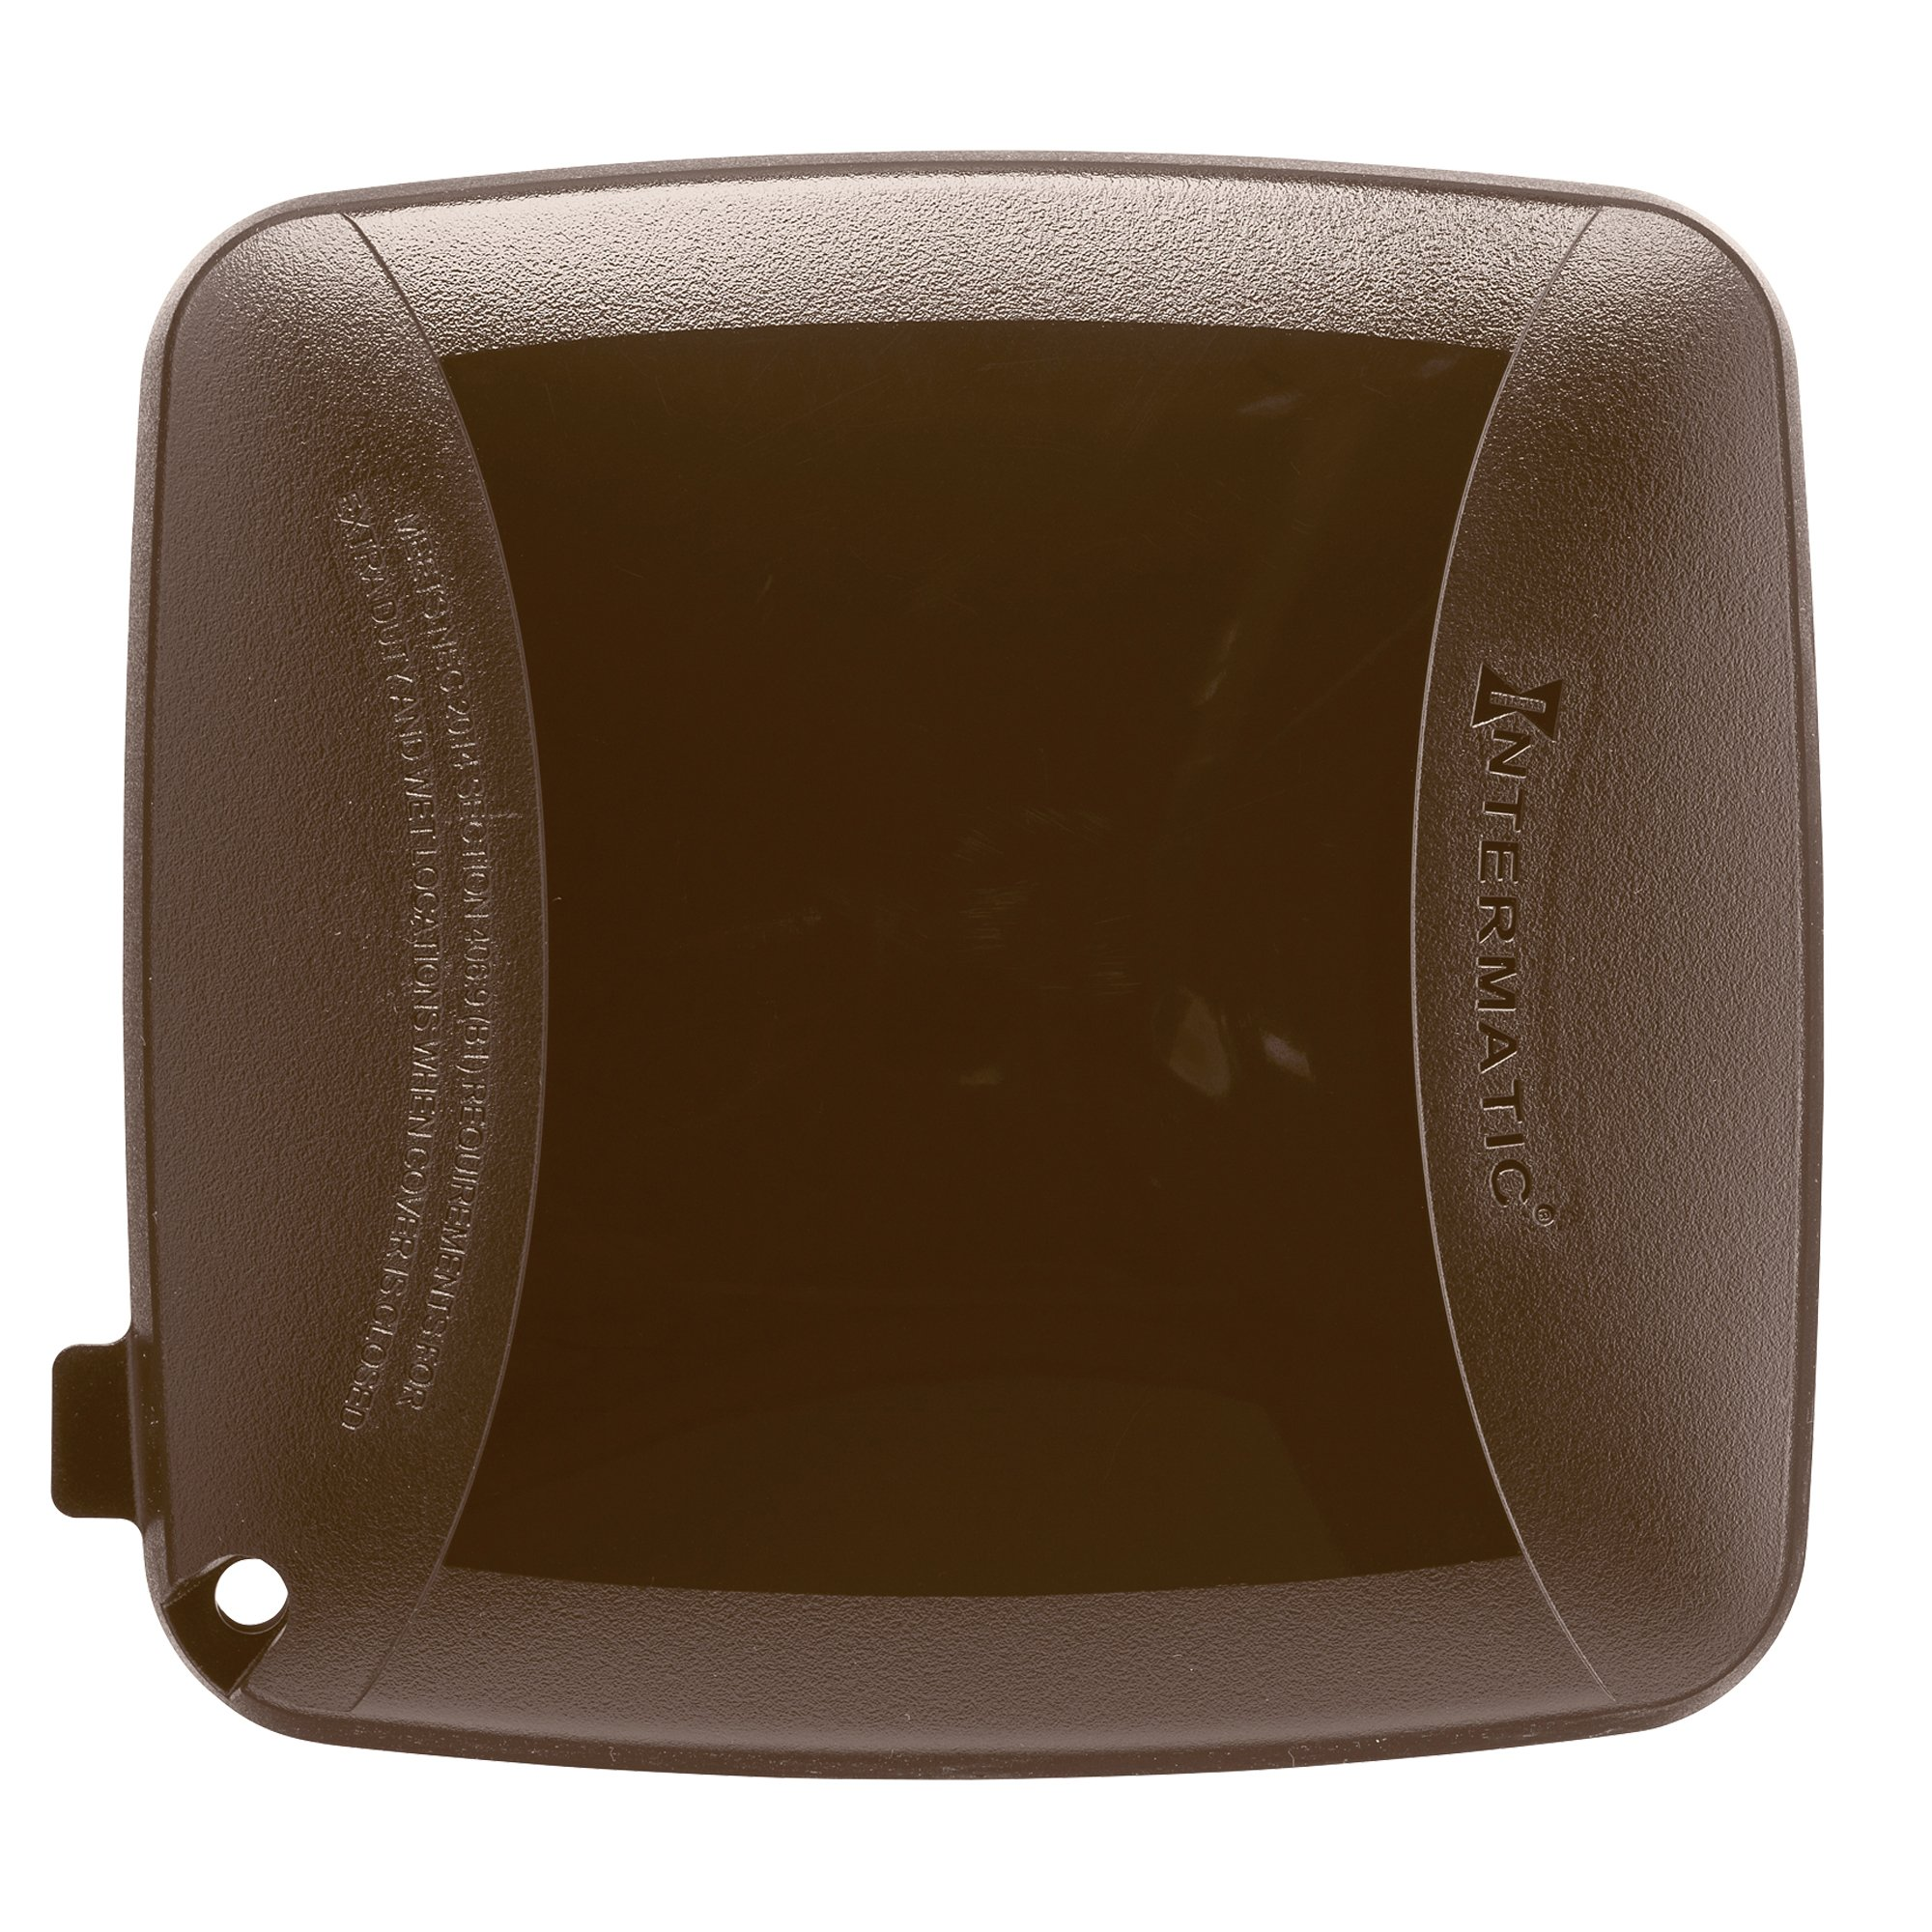 Intermatic WP5225BR Extra Duty Plastic Weatherproof Cover, 2.75-Inch Double Gang, Bronze by Intermatic